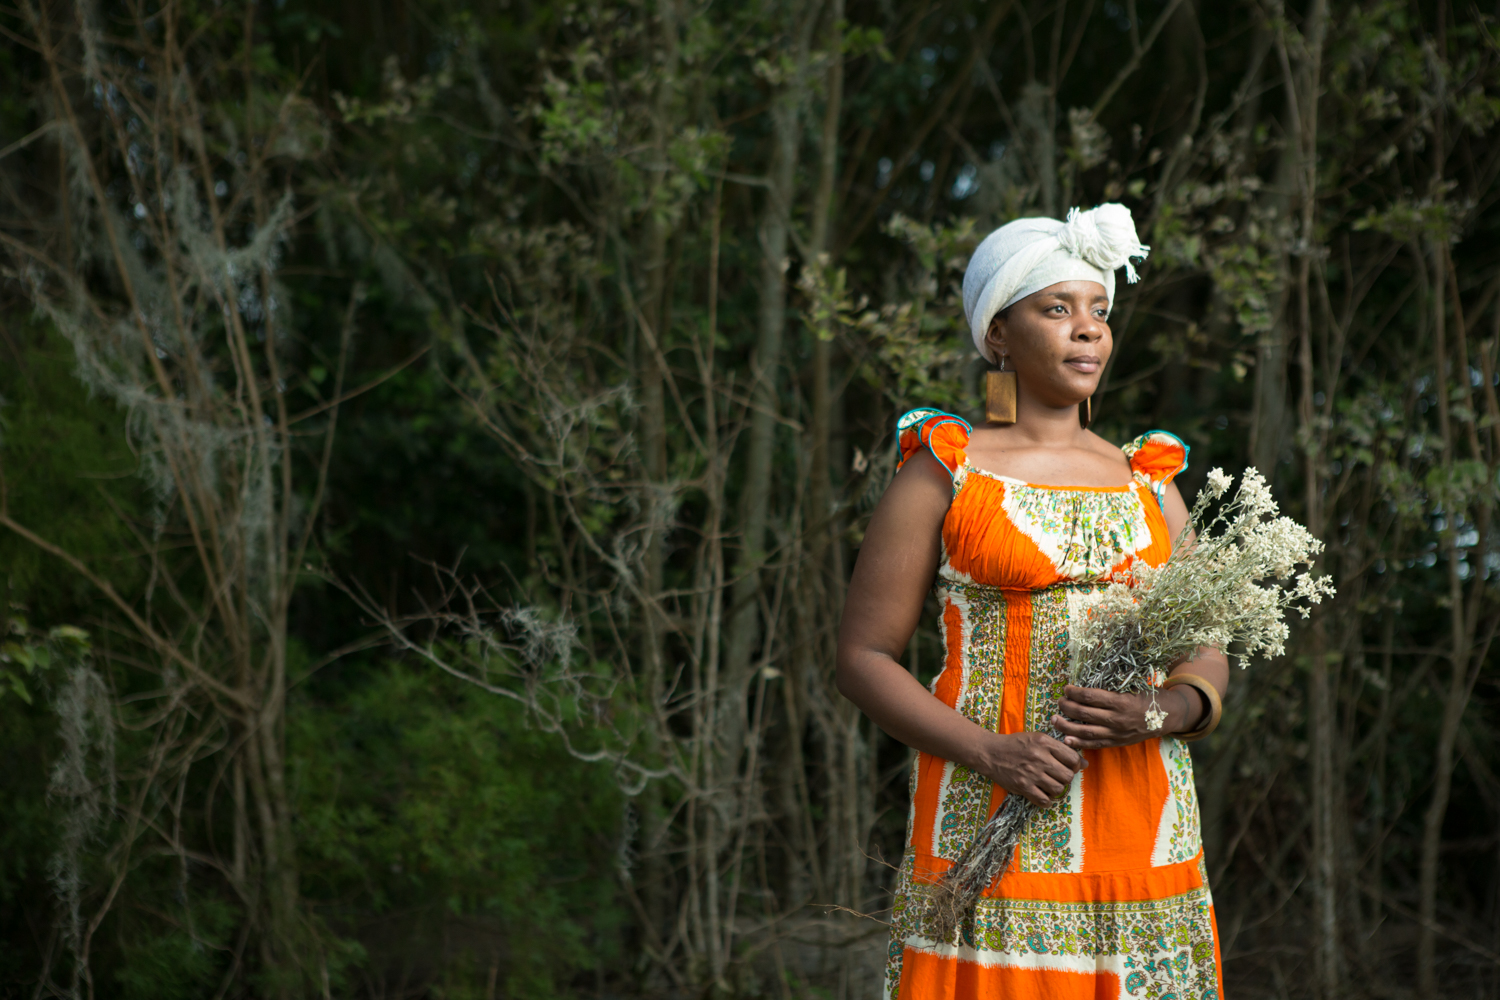 Sweetgrass & Sunlight - Photographer Lynsey Weatherspoon documents the rich and resilient culture of the Gullah Geechee of South Georgia.